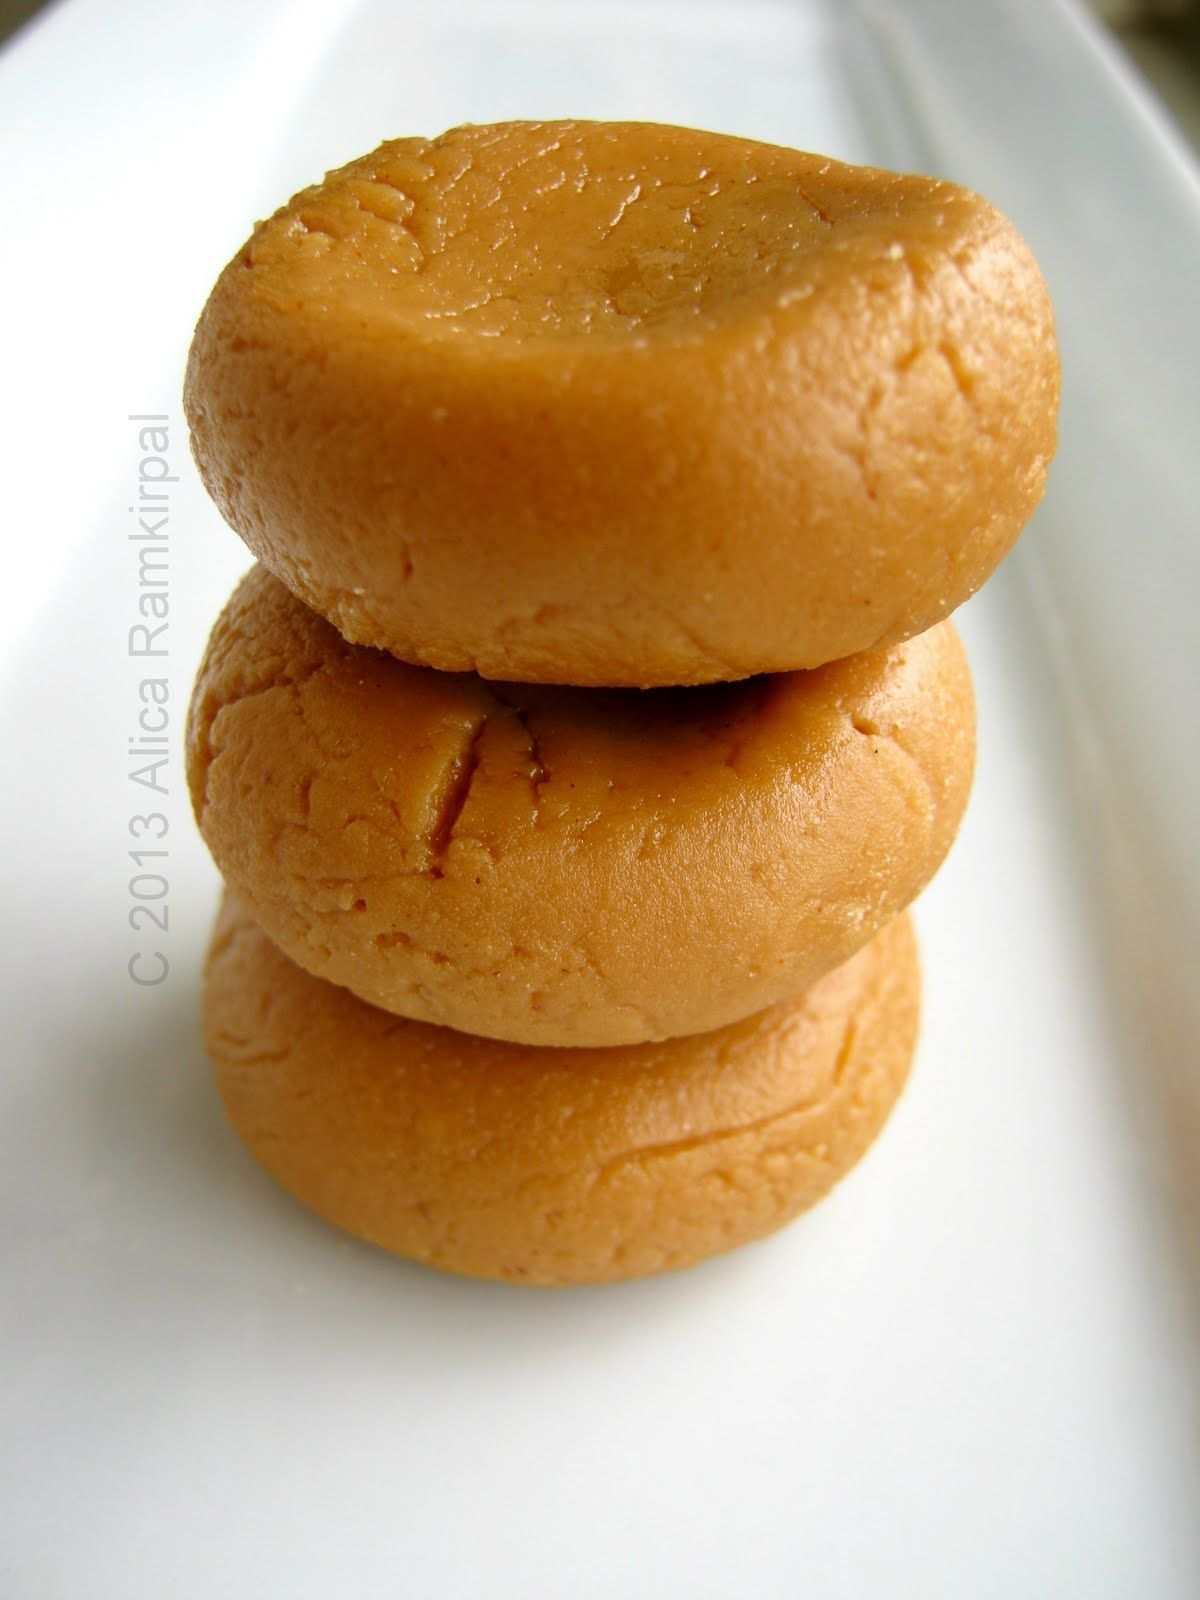 Peera X2f Pera Is A Variation Of An Indian Milk Sweet Known As Peda I Say Variation Because The Version I 39 Ve Seen Made In Guyan Recipes Food Peda Recipe